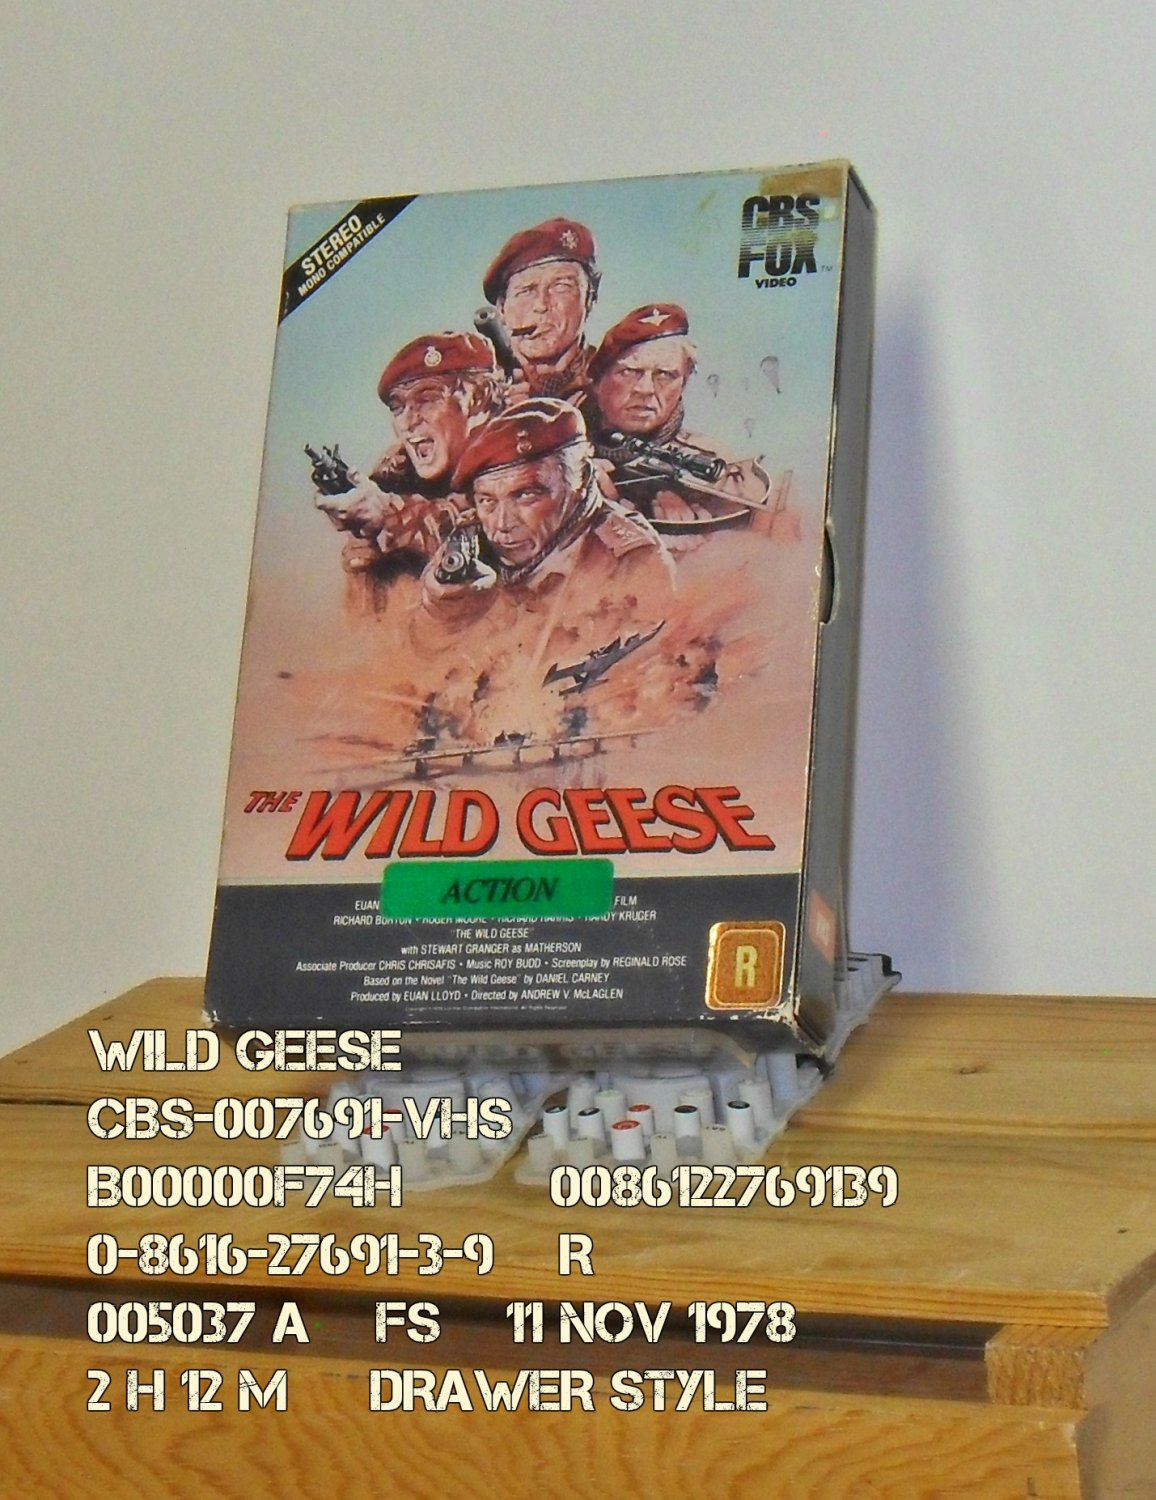 VHS - WILD GEESE